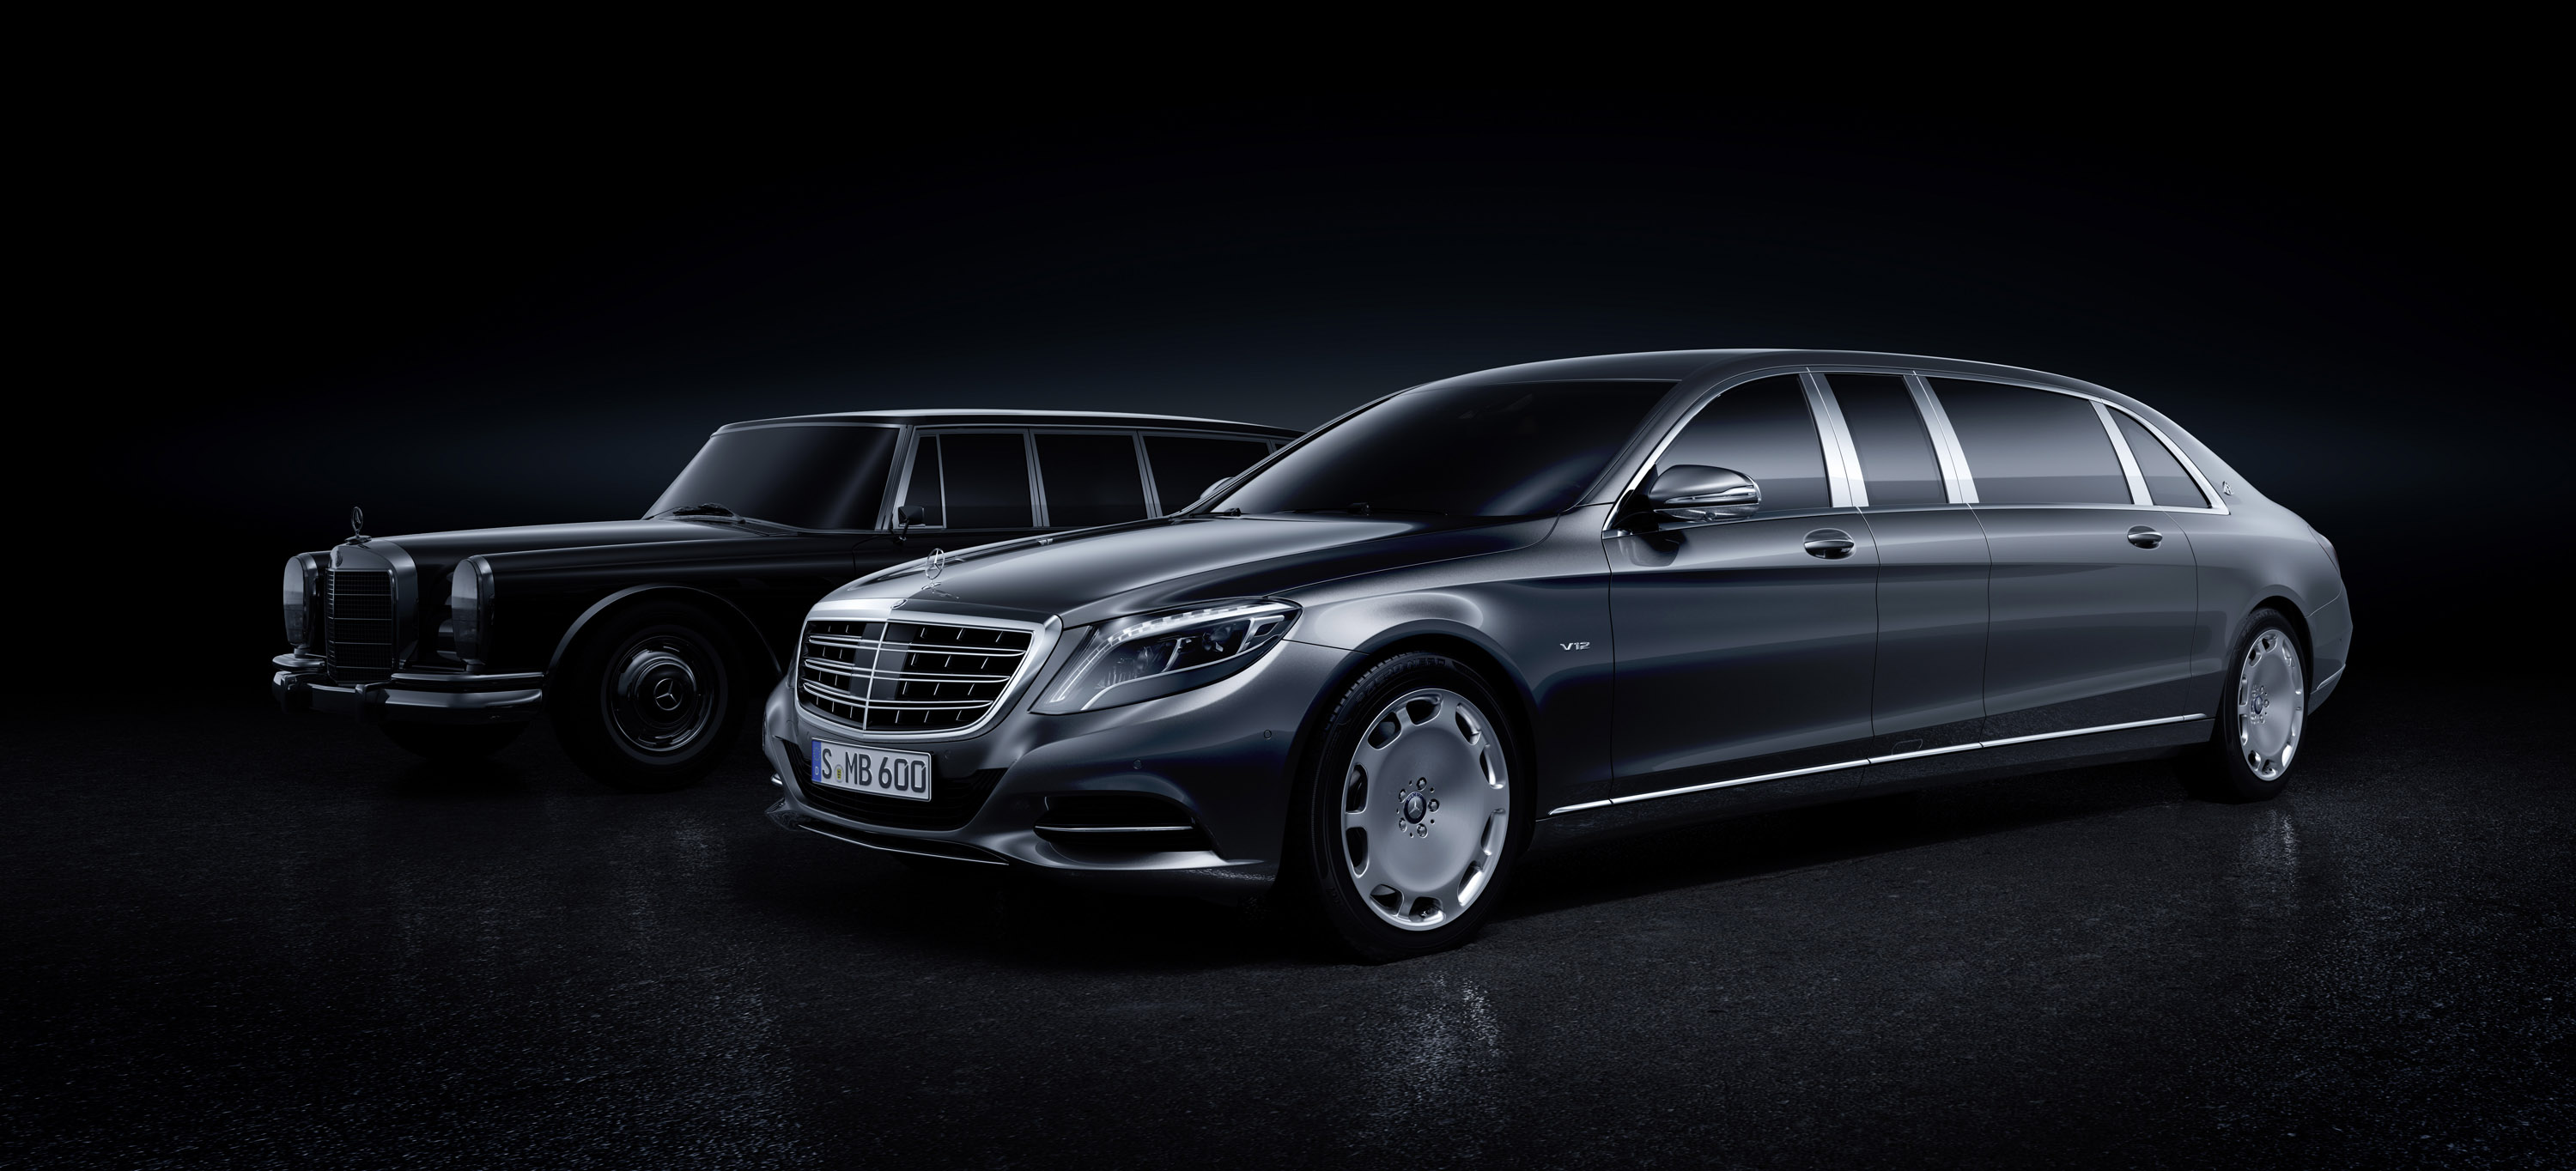 2016 mercedes benz s600 pullman maybach hd pictures for Mercedes benz s600 2015